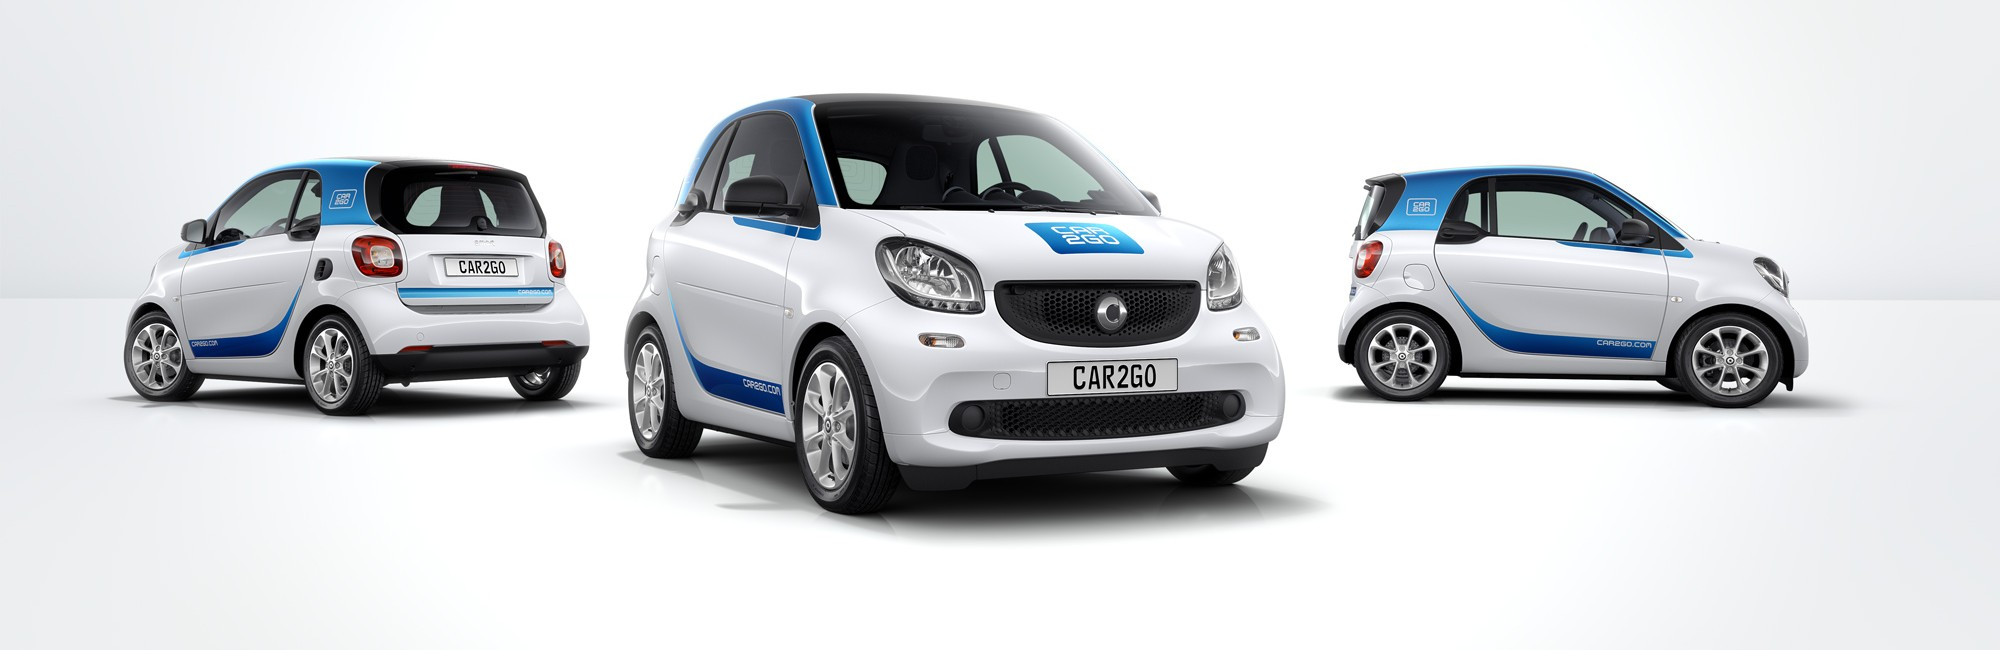 Car To Go >> Car2go Integrated New Vehicle Models Car2go Blog